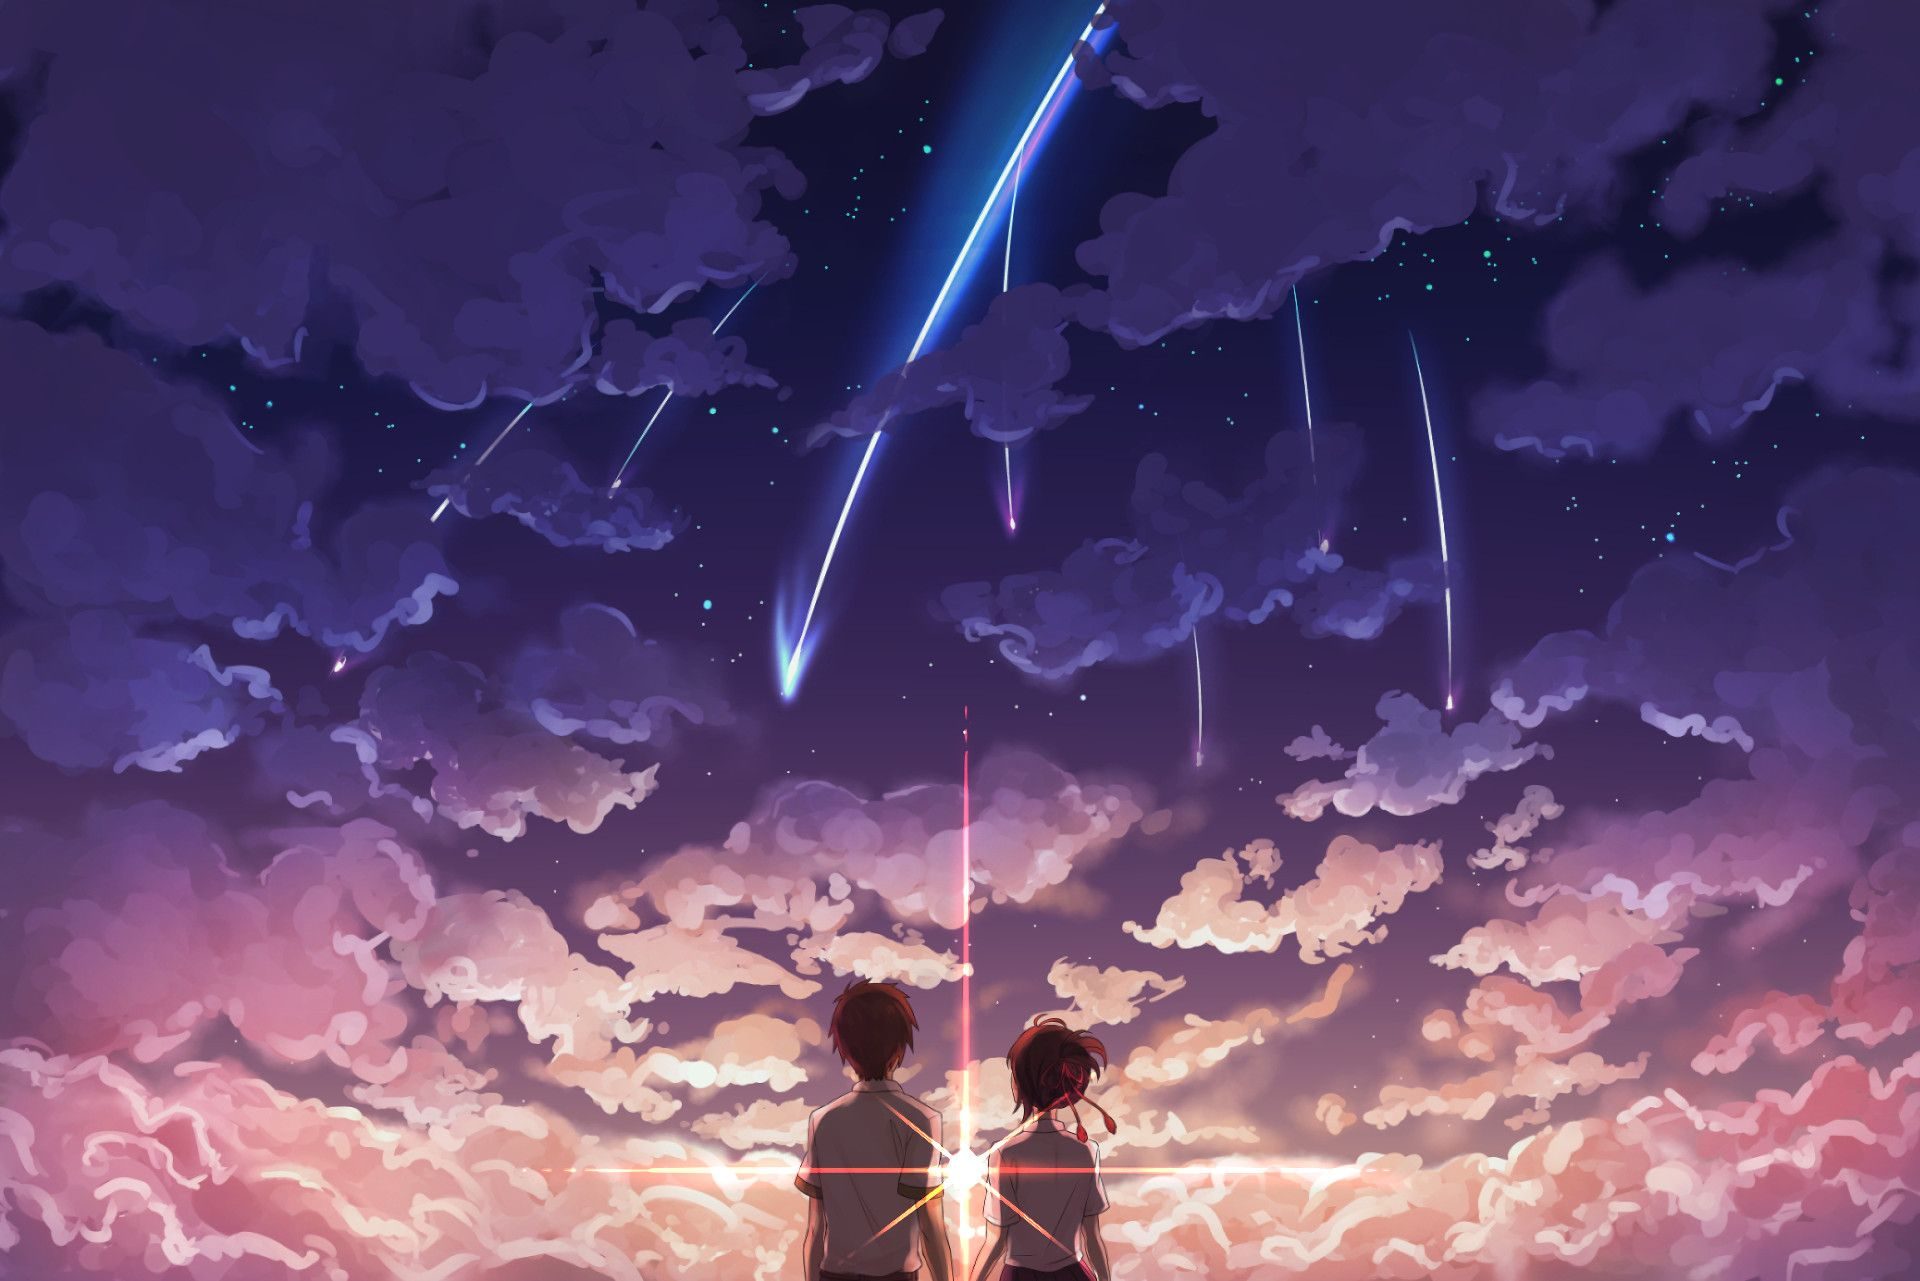 Kimi No Na Wa Wallpapers 1920x1281 For Phone With Images